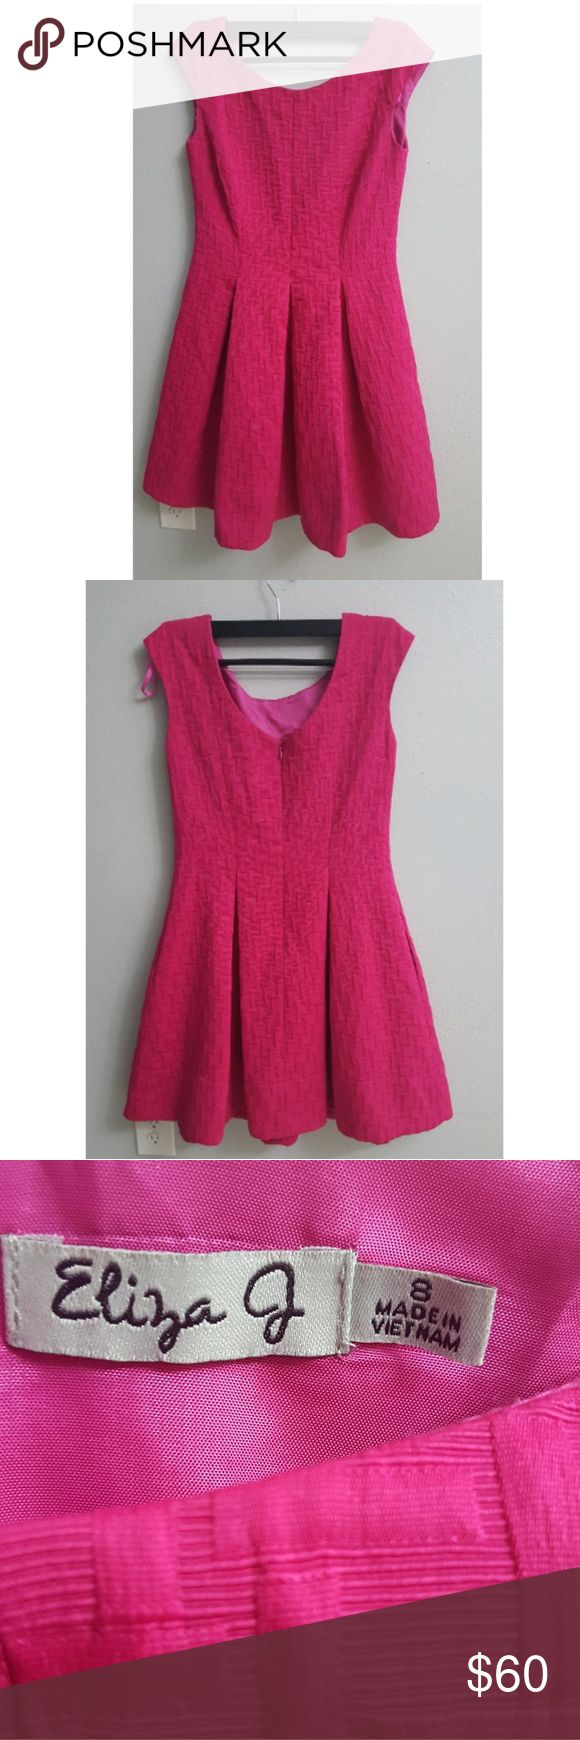 Eliza J Drees Fit and flare Eliza J pink dress in perfect condition and elegant. This wear-anywhere dress will keep you looking polish at the office, on dinner dates, or weekends outtings. Eliza J Dresses